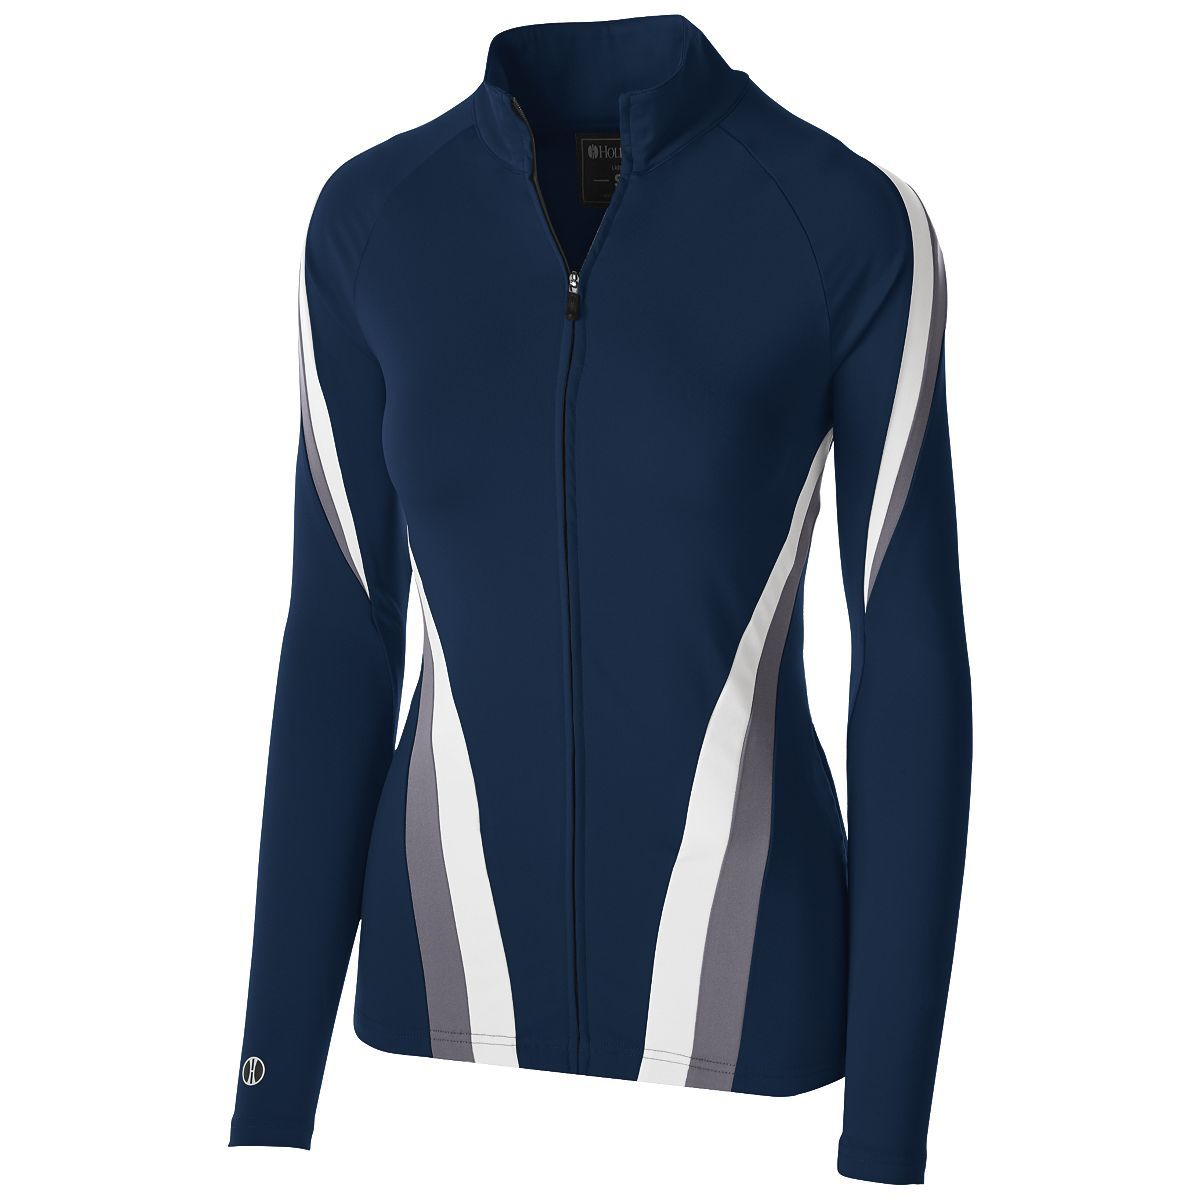 Ladies Aerial Jacket - Navy/graphite/white